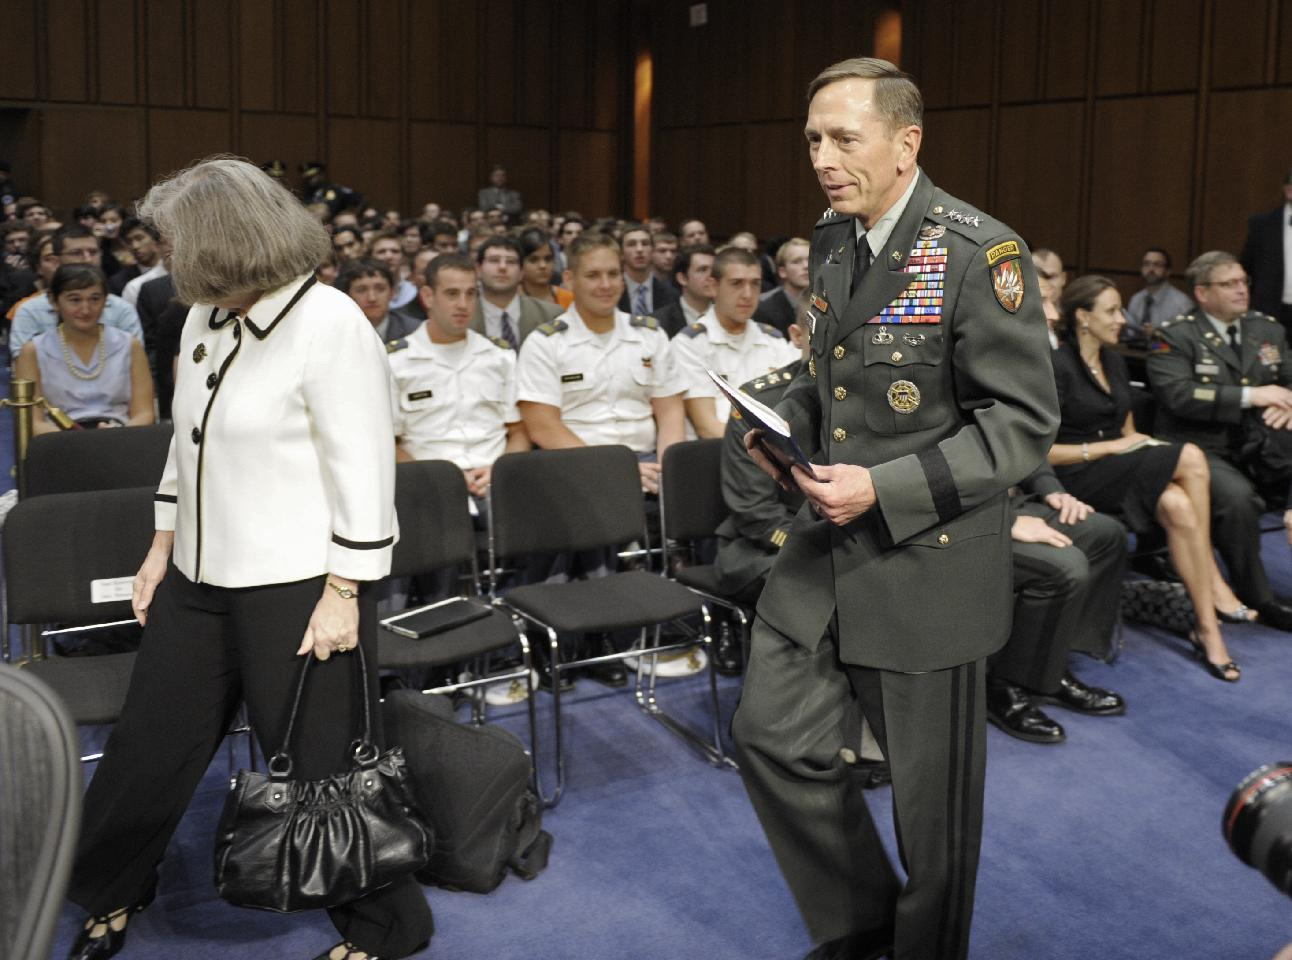 FILE - In this June 23, 2011, file photo, Gen. David Petraeus, center, walks with his wife Holly, left, past a seated Paula Broadwell, rear right, as he arrives to appear before the Senate Intelligence Committee during a hearing on his nomination to be Director of the Central Intelligence Agency on Capitol Hill in Washington. Petraeus quit Nov. 9, 2012, after acknowledging an extramarital relationship. As questions arise about the extramarital affair between Petraeus and his biographer, Paula Broadwell, she has remained quiet about details of their relationship. However, information has emerged about Jill Kelley, the woman who received the emails from Broadwell that led to the FBI's discovery of Petraeus' indiscretion. (AP Photo/Cliff Owen, File)